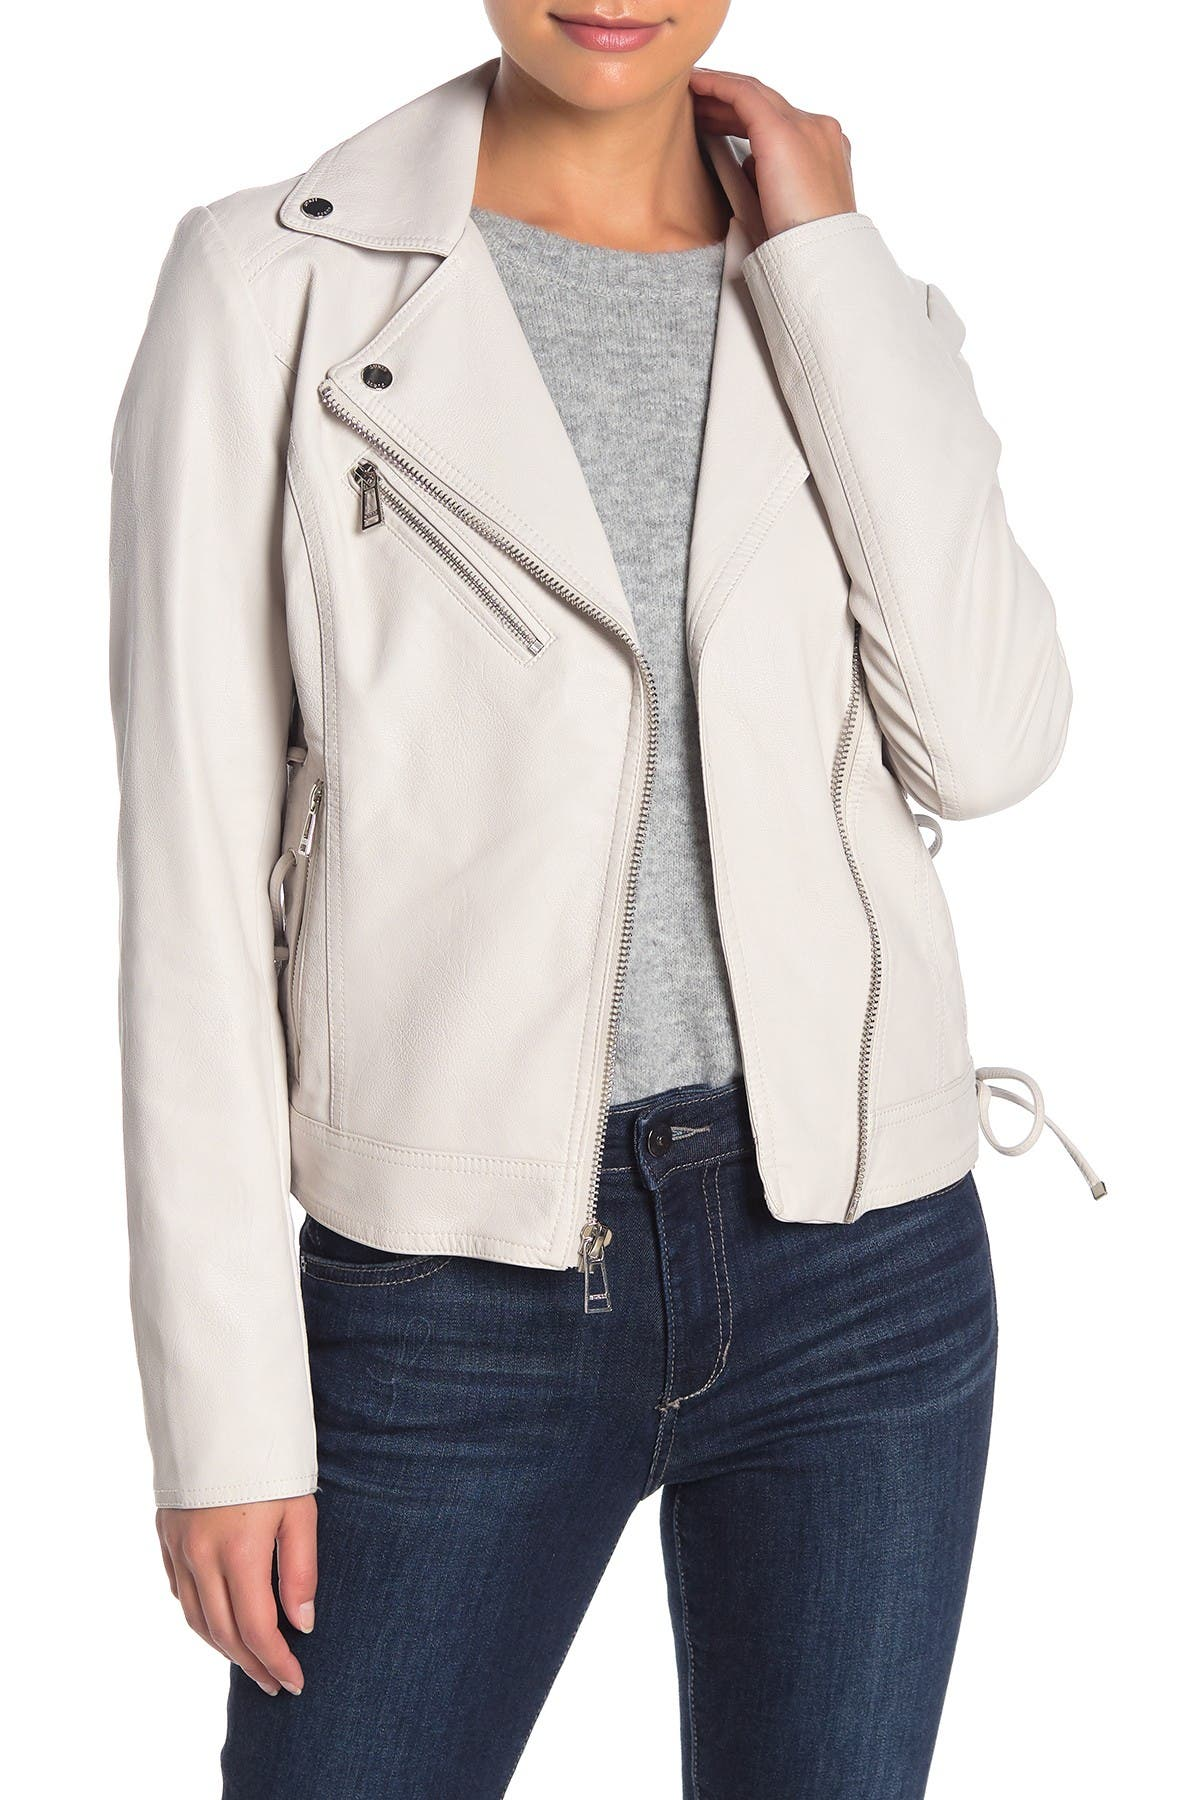 Image of GUESS Side Lace-Up Faux Leather Jacket